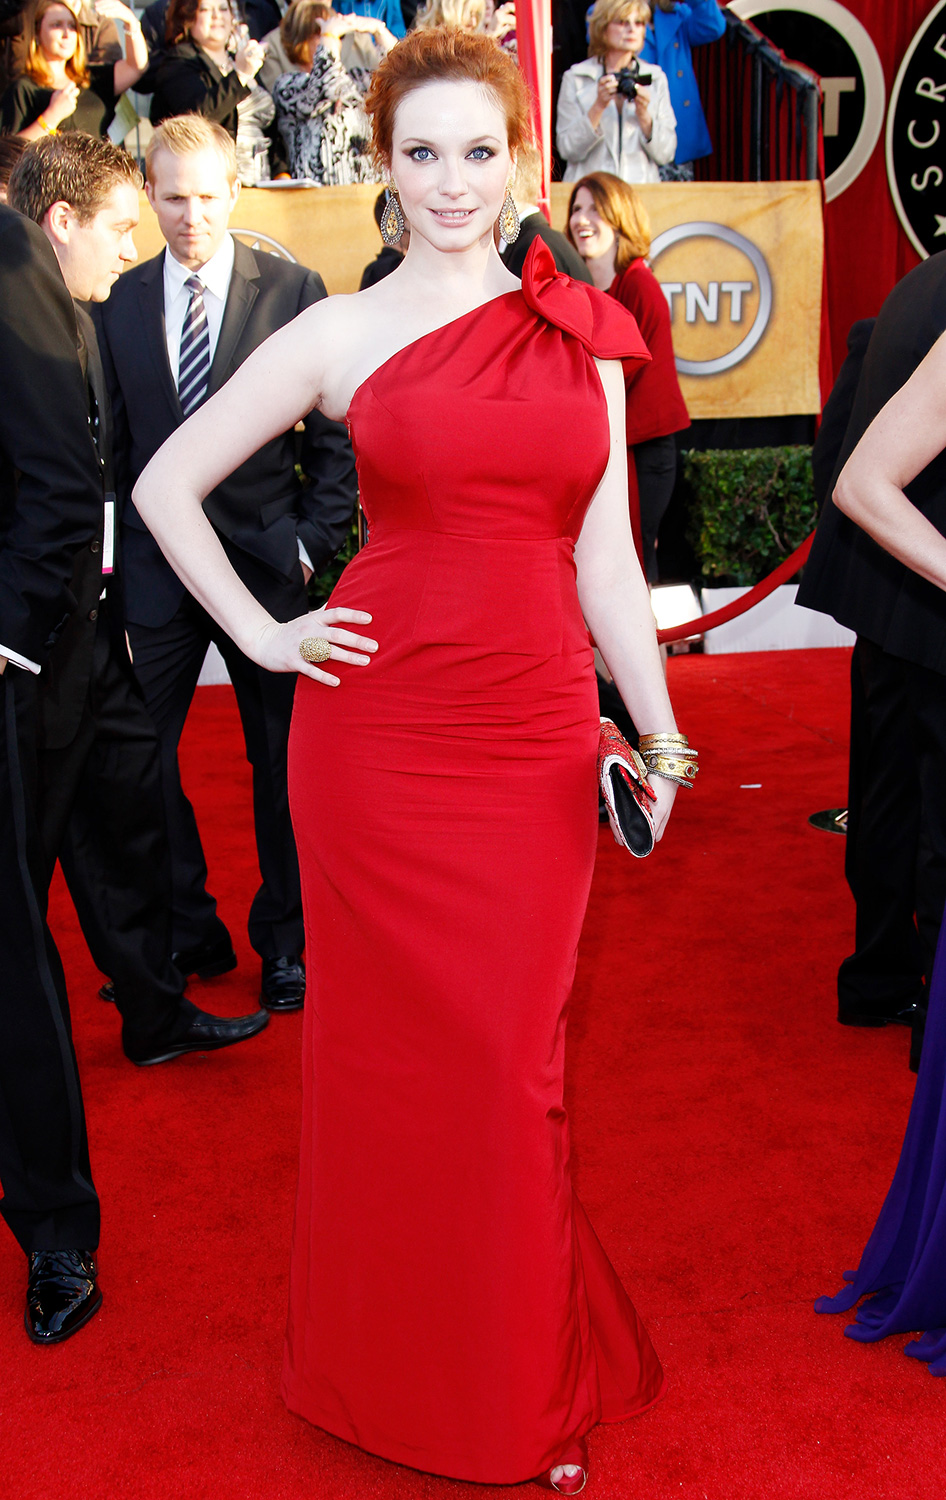 Christina Hendricks arrives at the 16th Annual Screen Actors Guild Awards held at the Shrine Auditorium on January 23, 2010 in Los Angeles, California